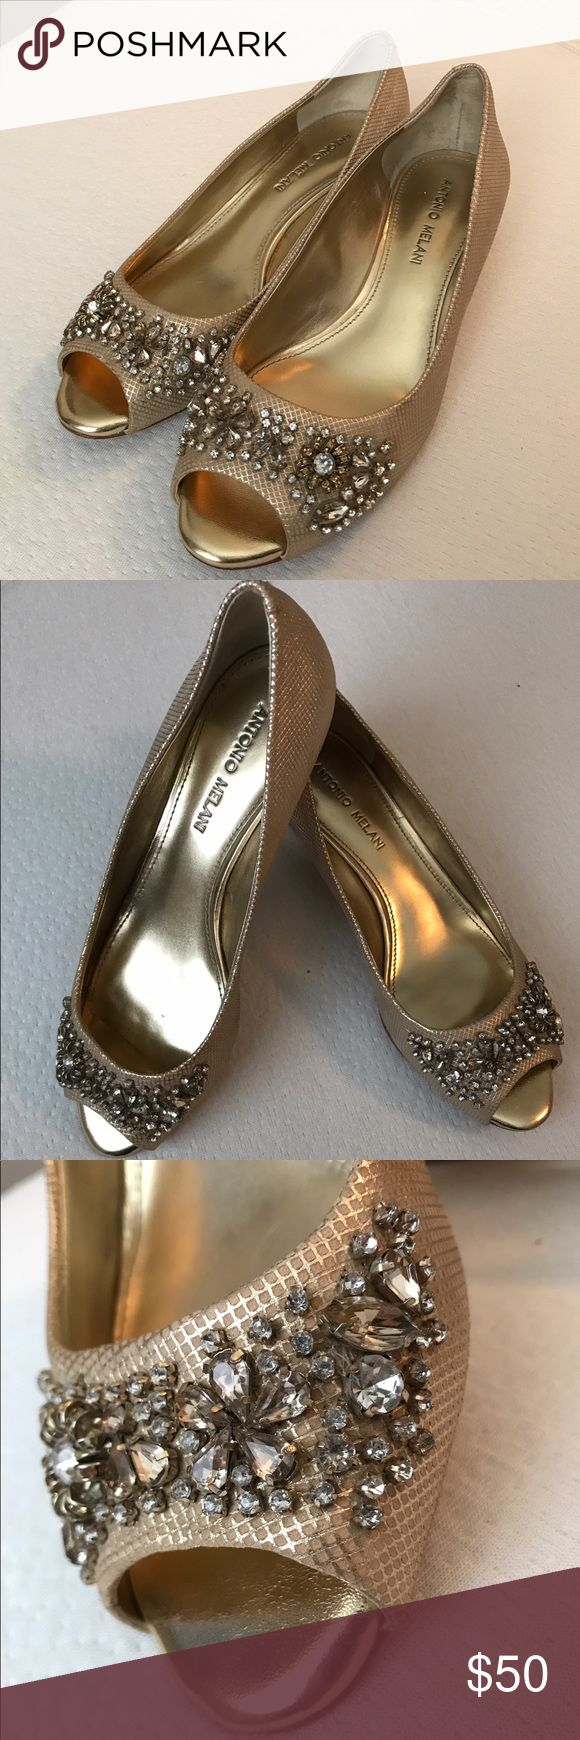 Antonio Melani kitten heals Gold kitten heal. Worn once. Comfy and classy. Love the gems and rhinestone accents. ANTONIO MELANI Shoes Heels